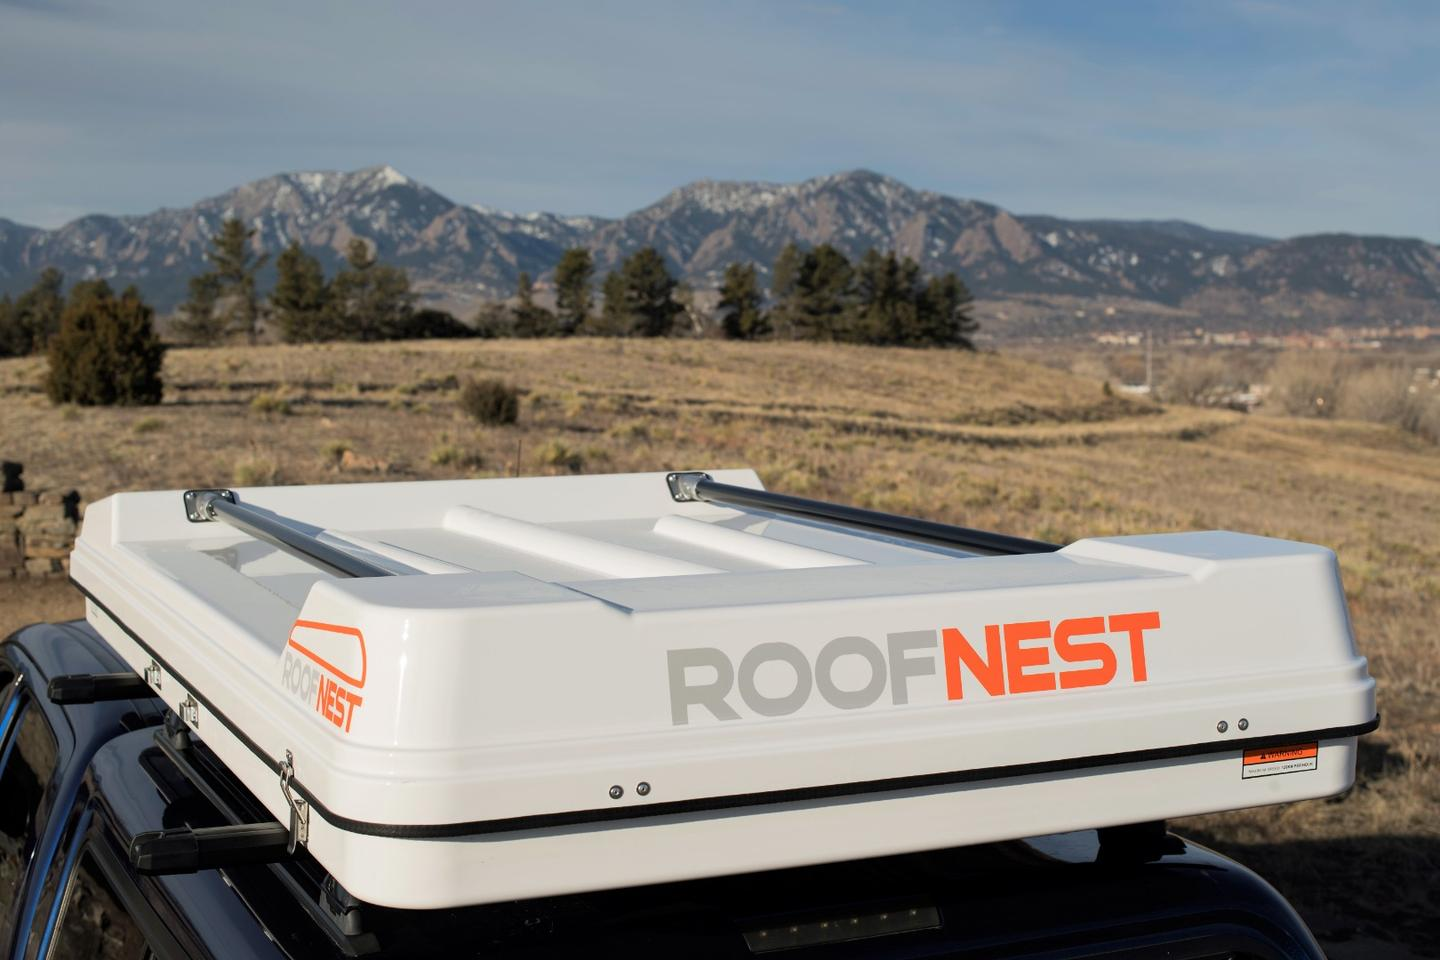 Roofnest's latest hardshell tent, the Sandpiper includes built-in rails so that you don't lose the gear-hauling potential of your roof